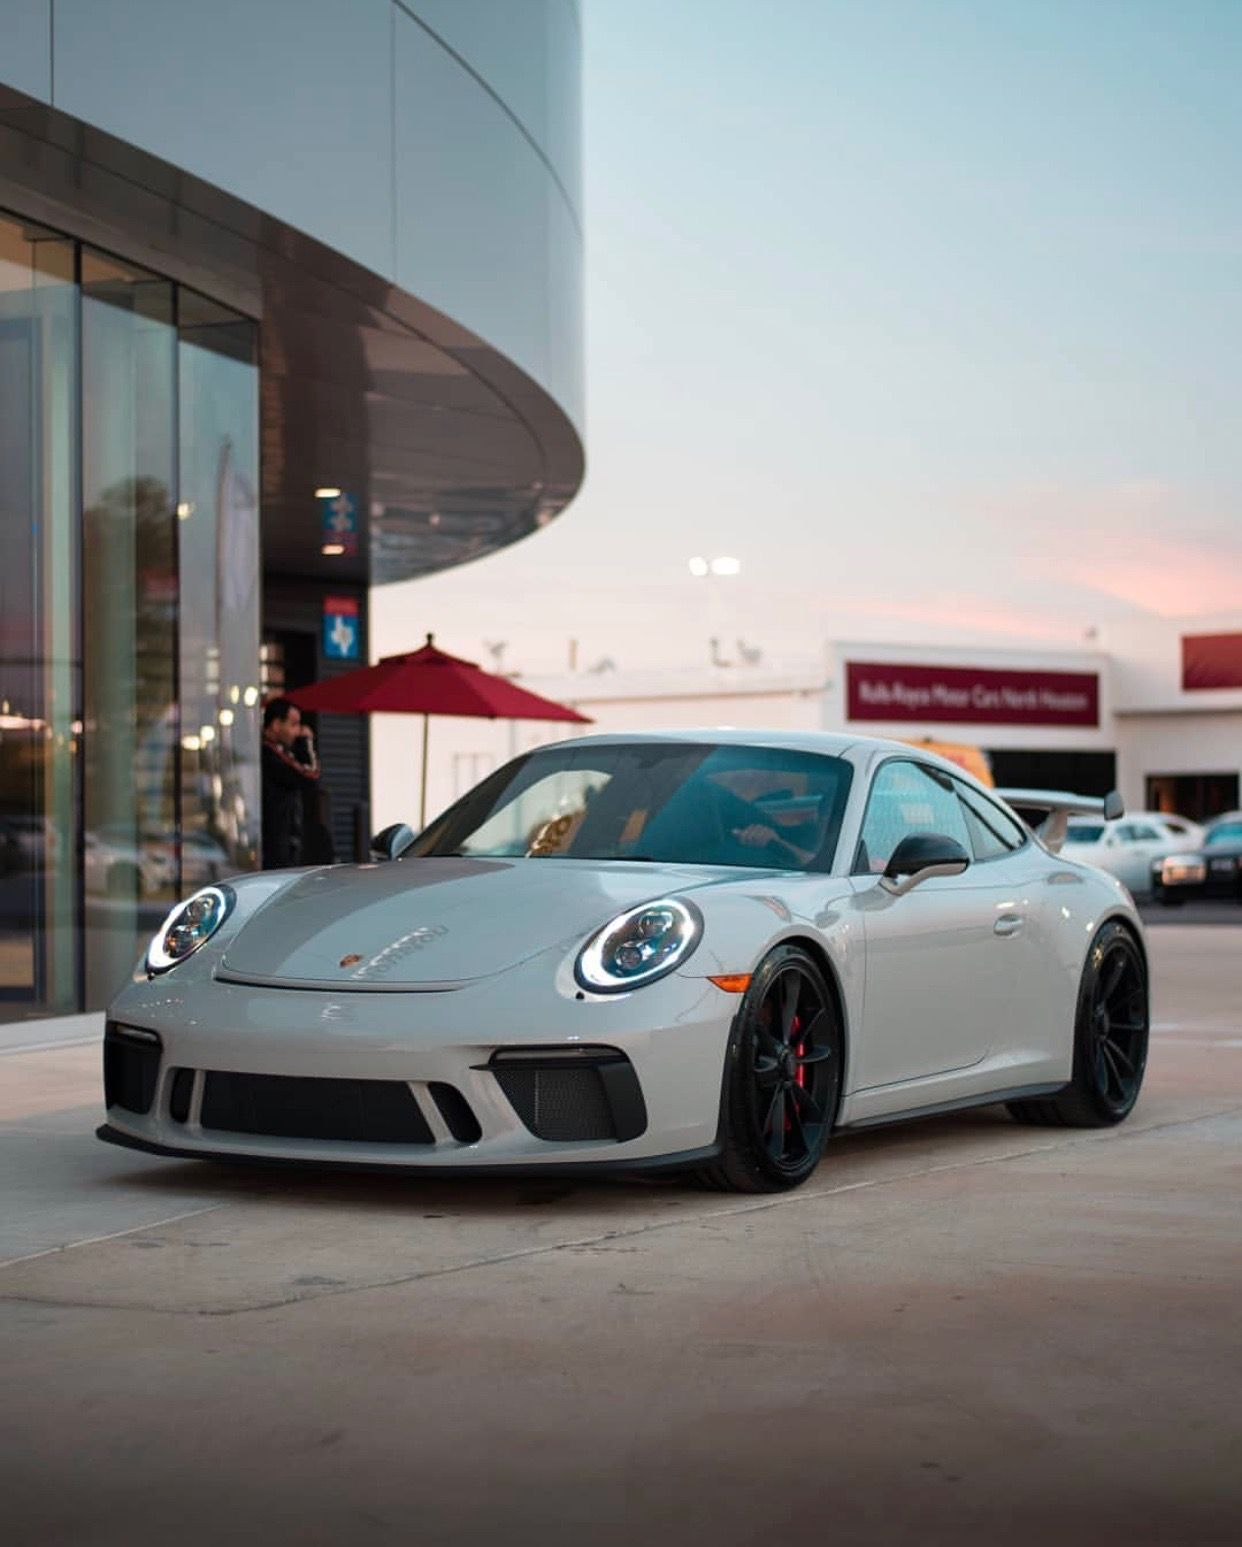 Porsche 991 2 GT3 painted in paint to sample Chalk taken by ldv photography on Instagram